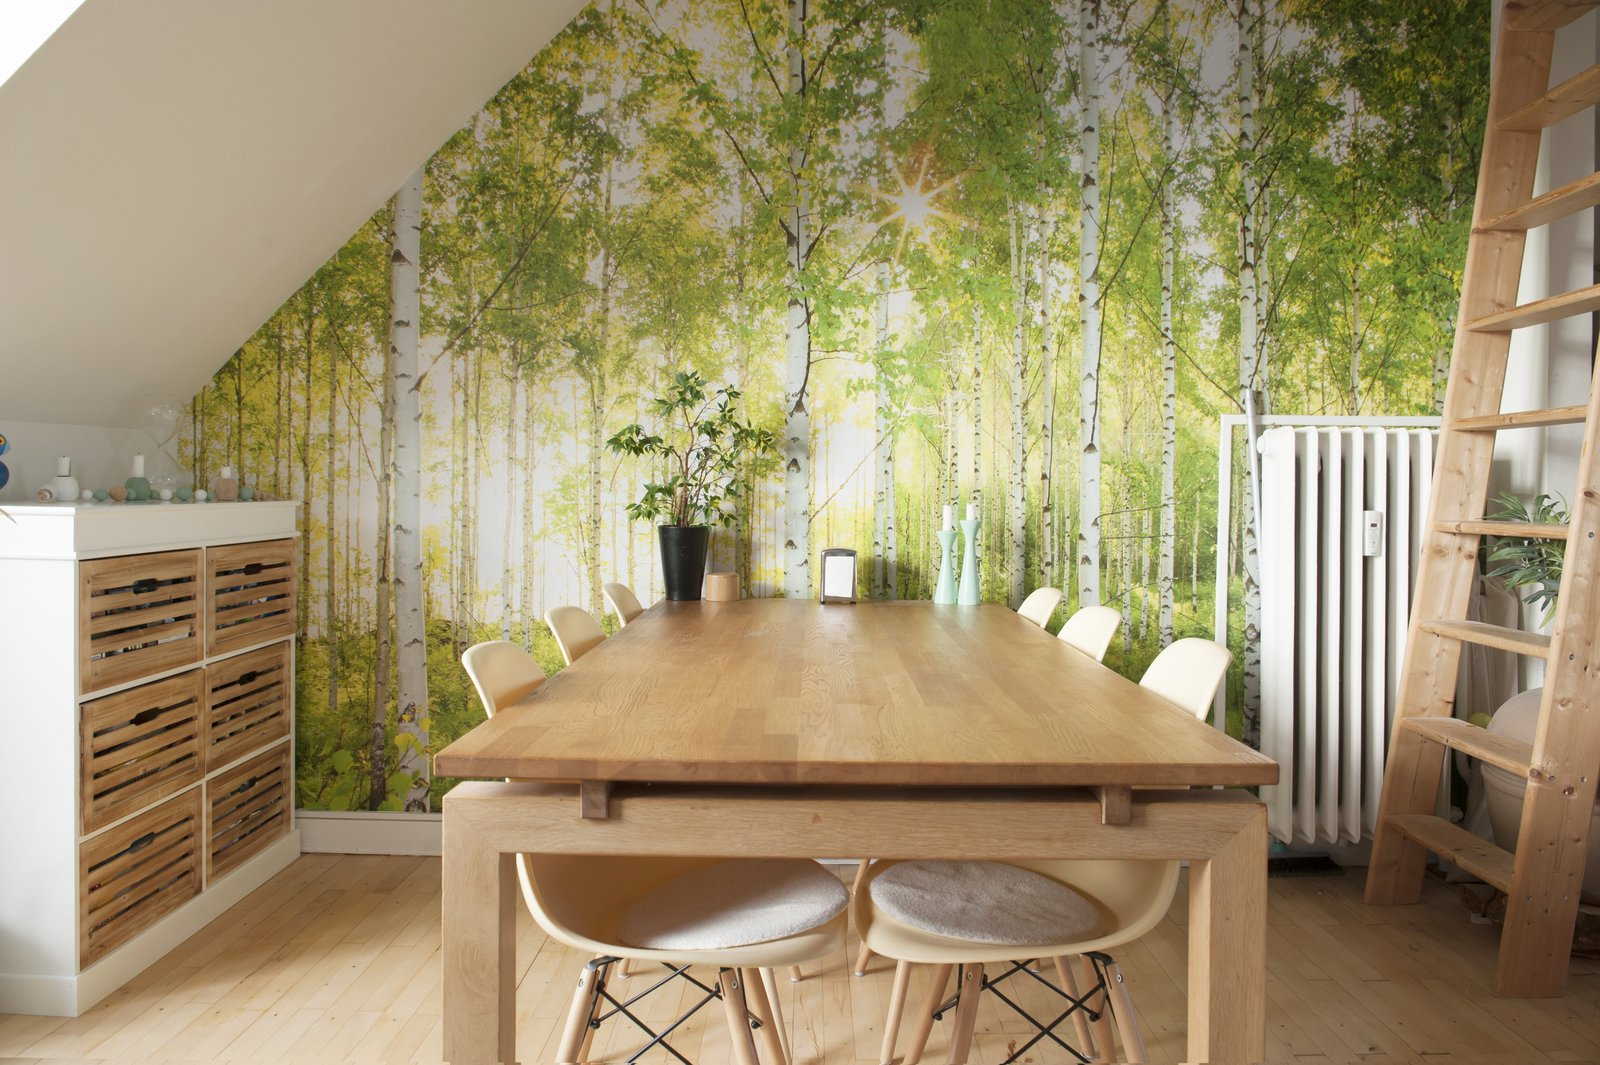 Dining Room, Table, Storage, and Medium Hardwood Floor wooden dining table, storage drawers, and ladder add an earthy feel to the forest wallpaper  Bringing Nature Inside by Petra Ford